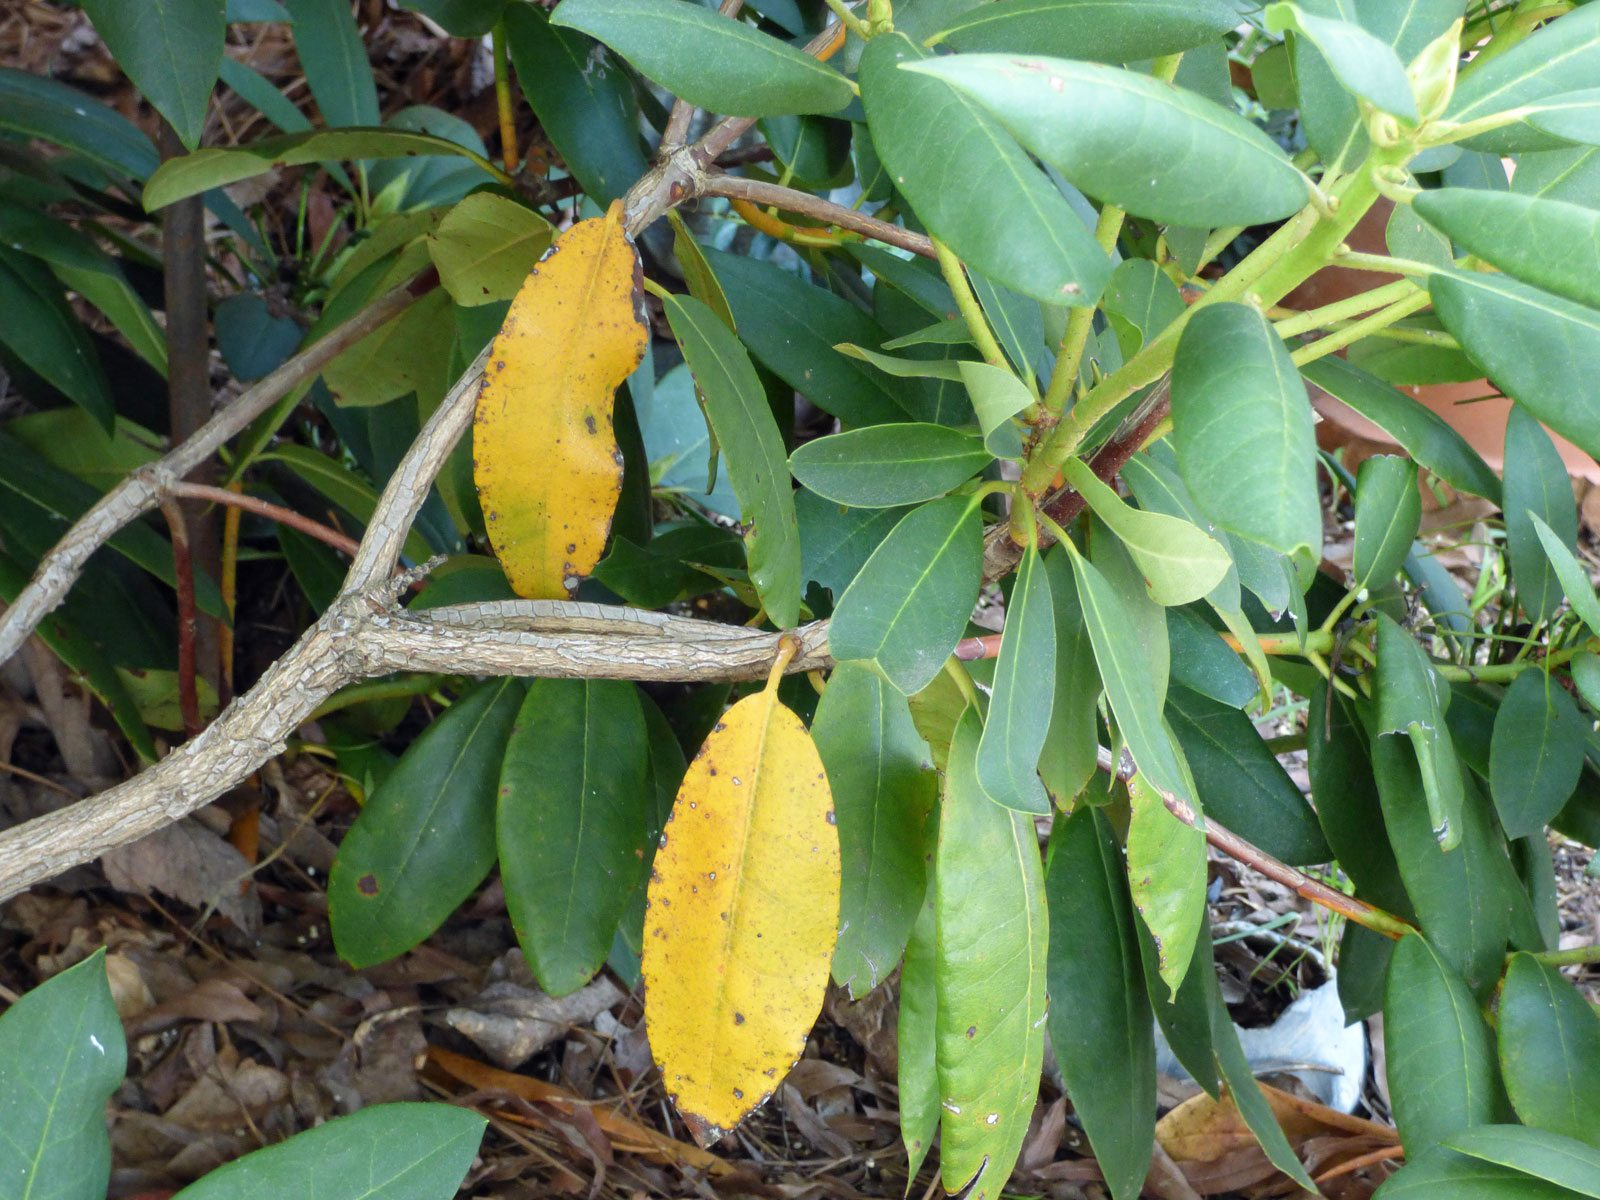 Rhododendron Leaves Turning Yellow Why Does My Rhododendron Have